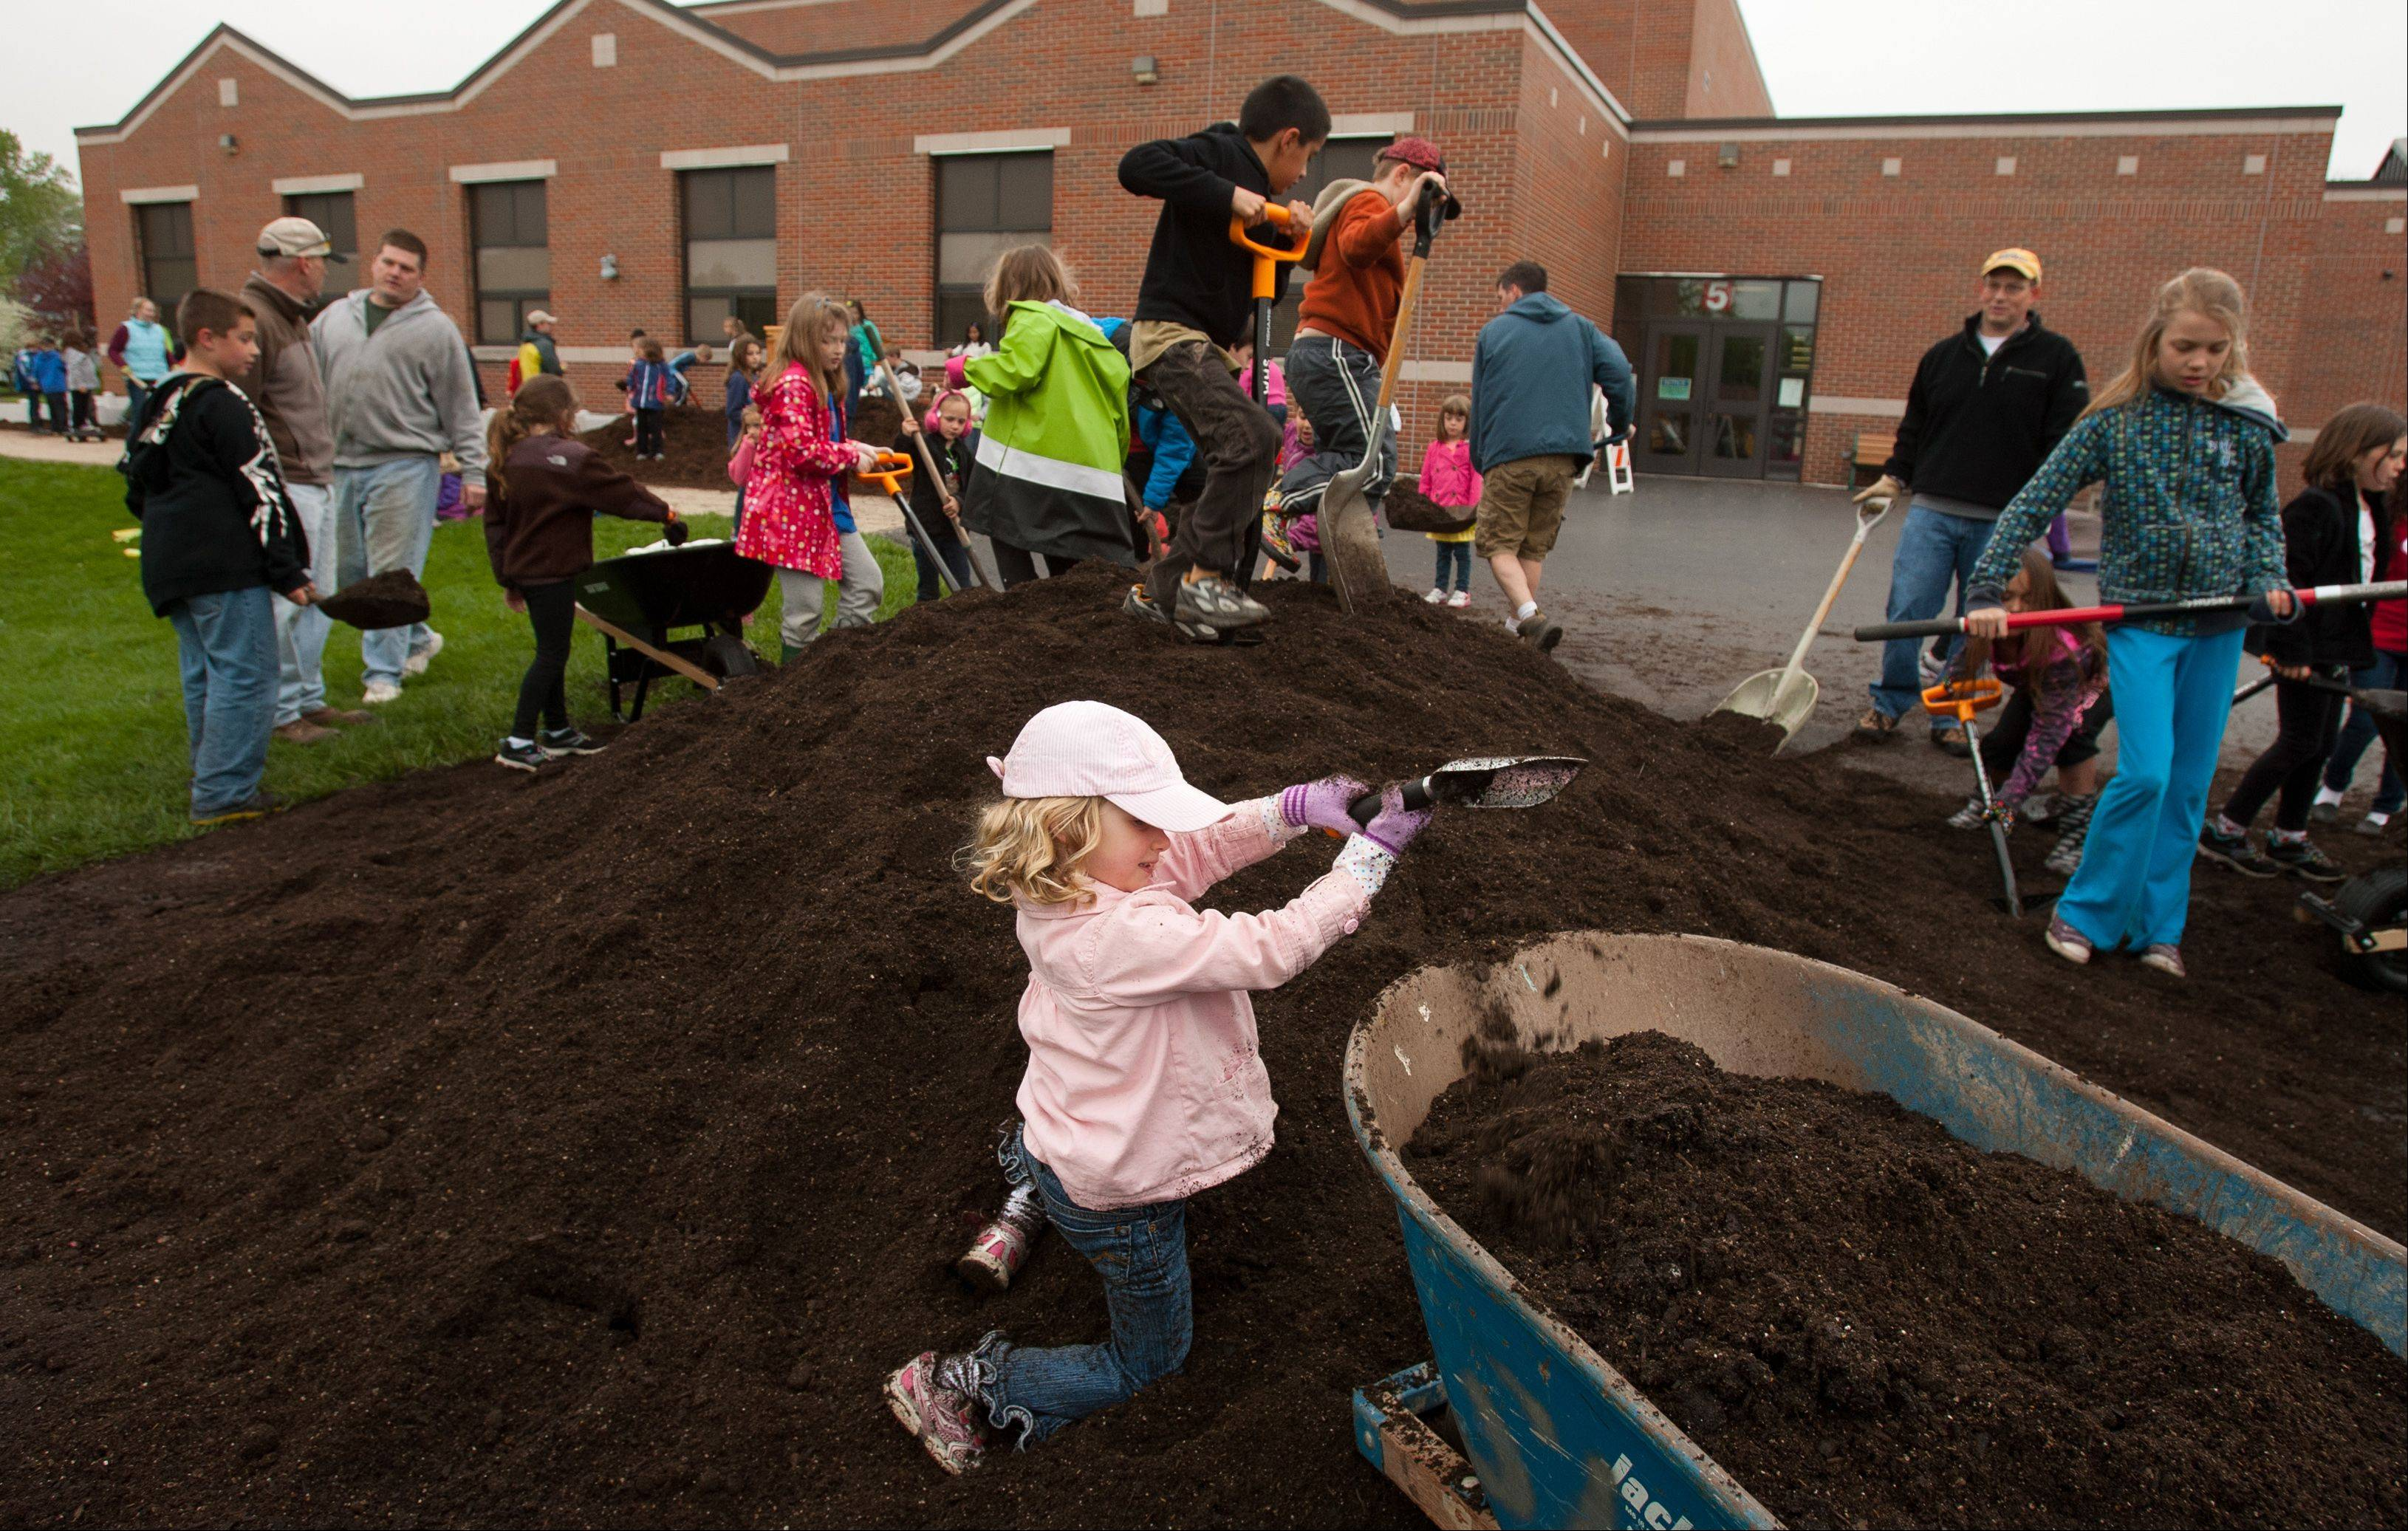 Maddie Cook, 4, of Lombard, along with other students and parents at Hammerschmidt School in Lombard, prepare garden beds for the Learn + Play gardens to be built at the school.